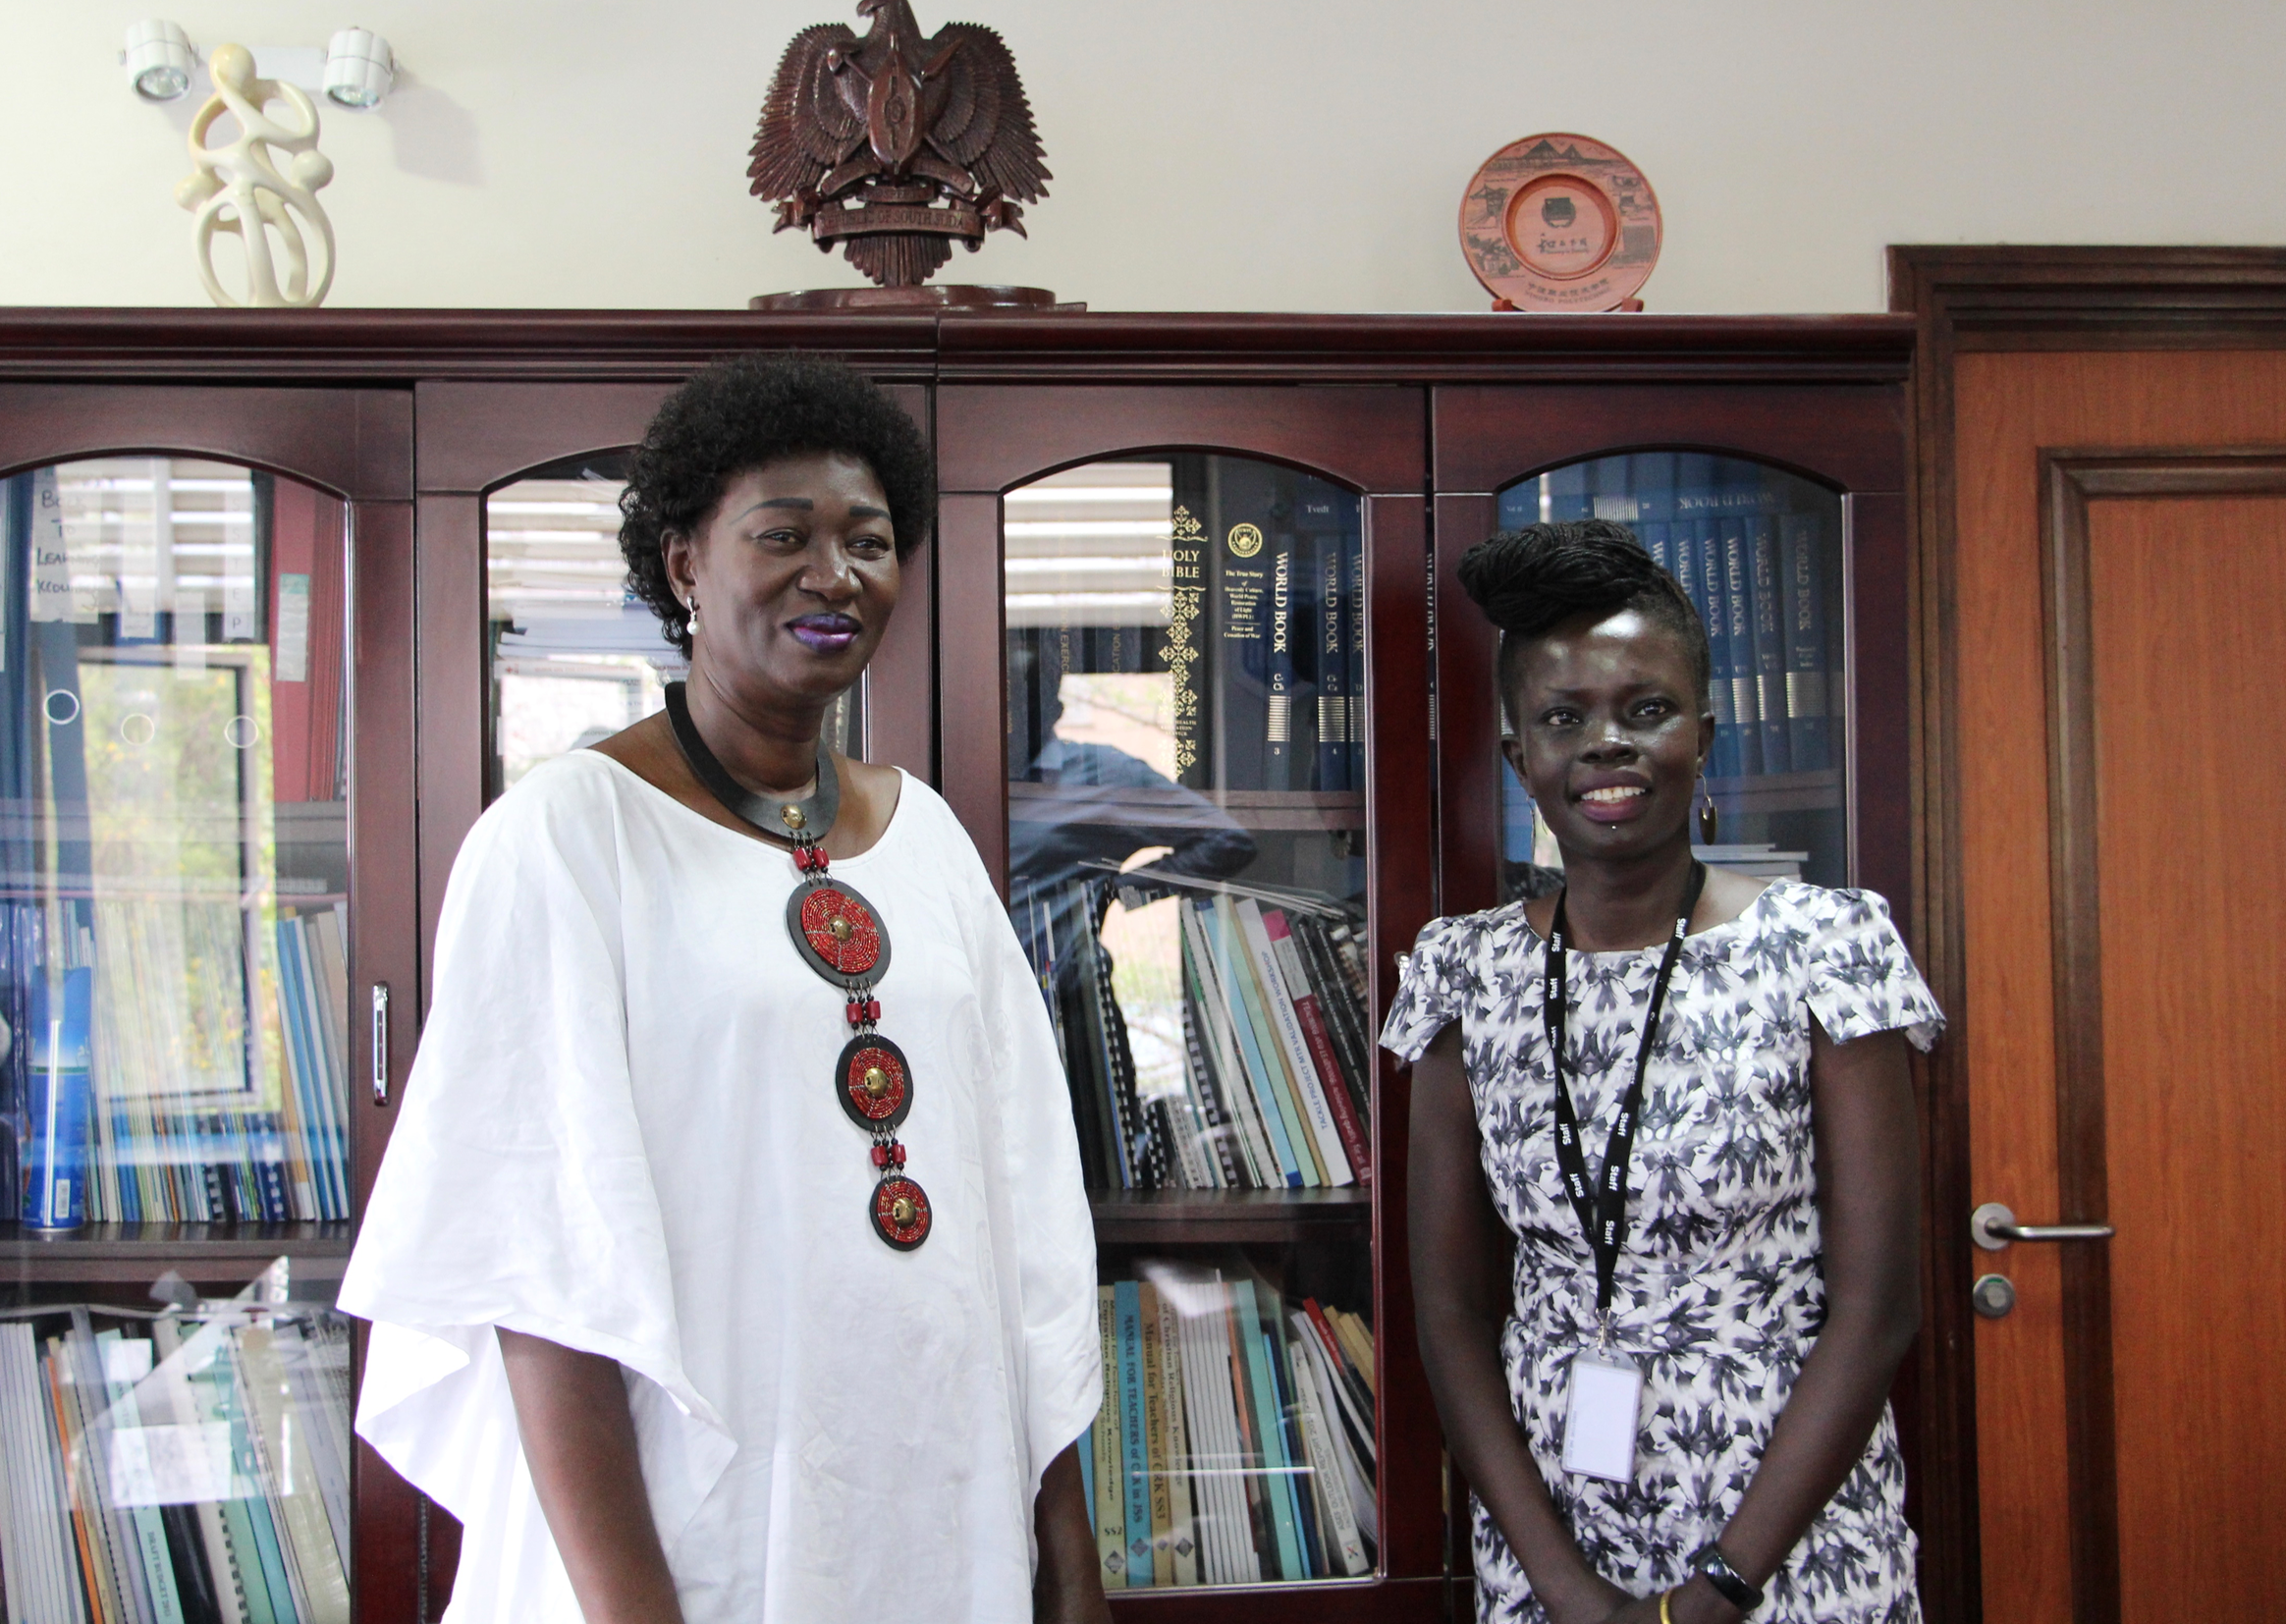 Honourable Minister of Education, Awut Deng Acuil and GESS Team Leader, Akuja de Garang MBE meet to discuss the way forward during the time of Covid-19